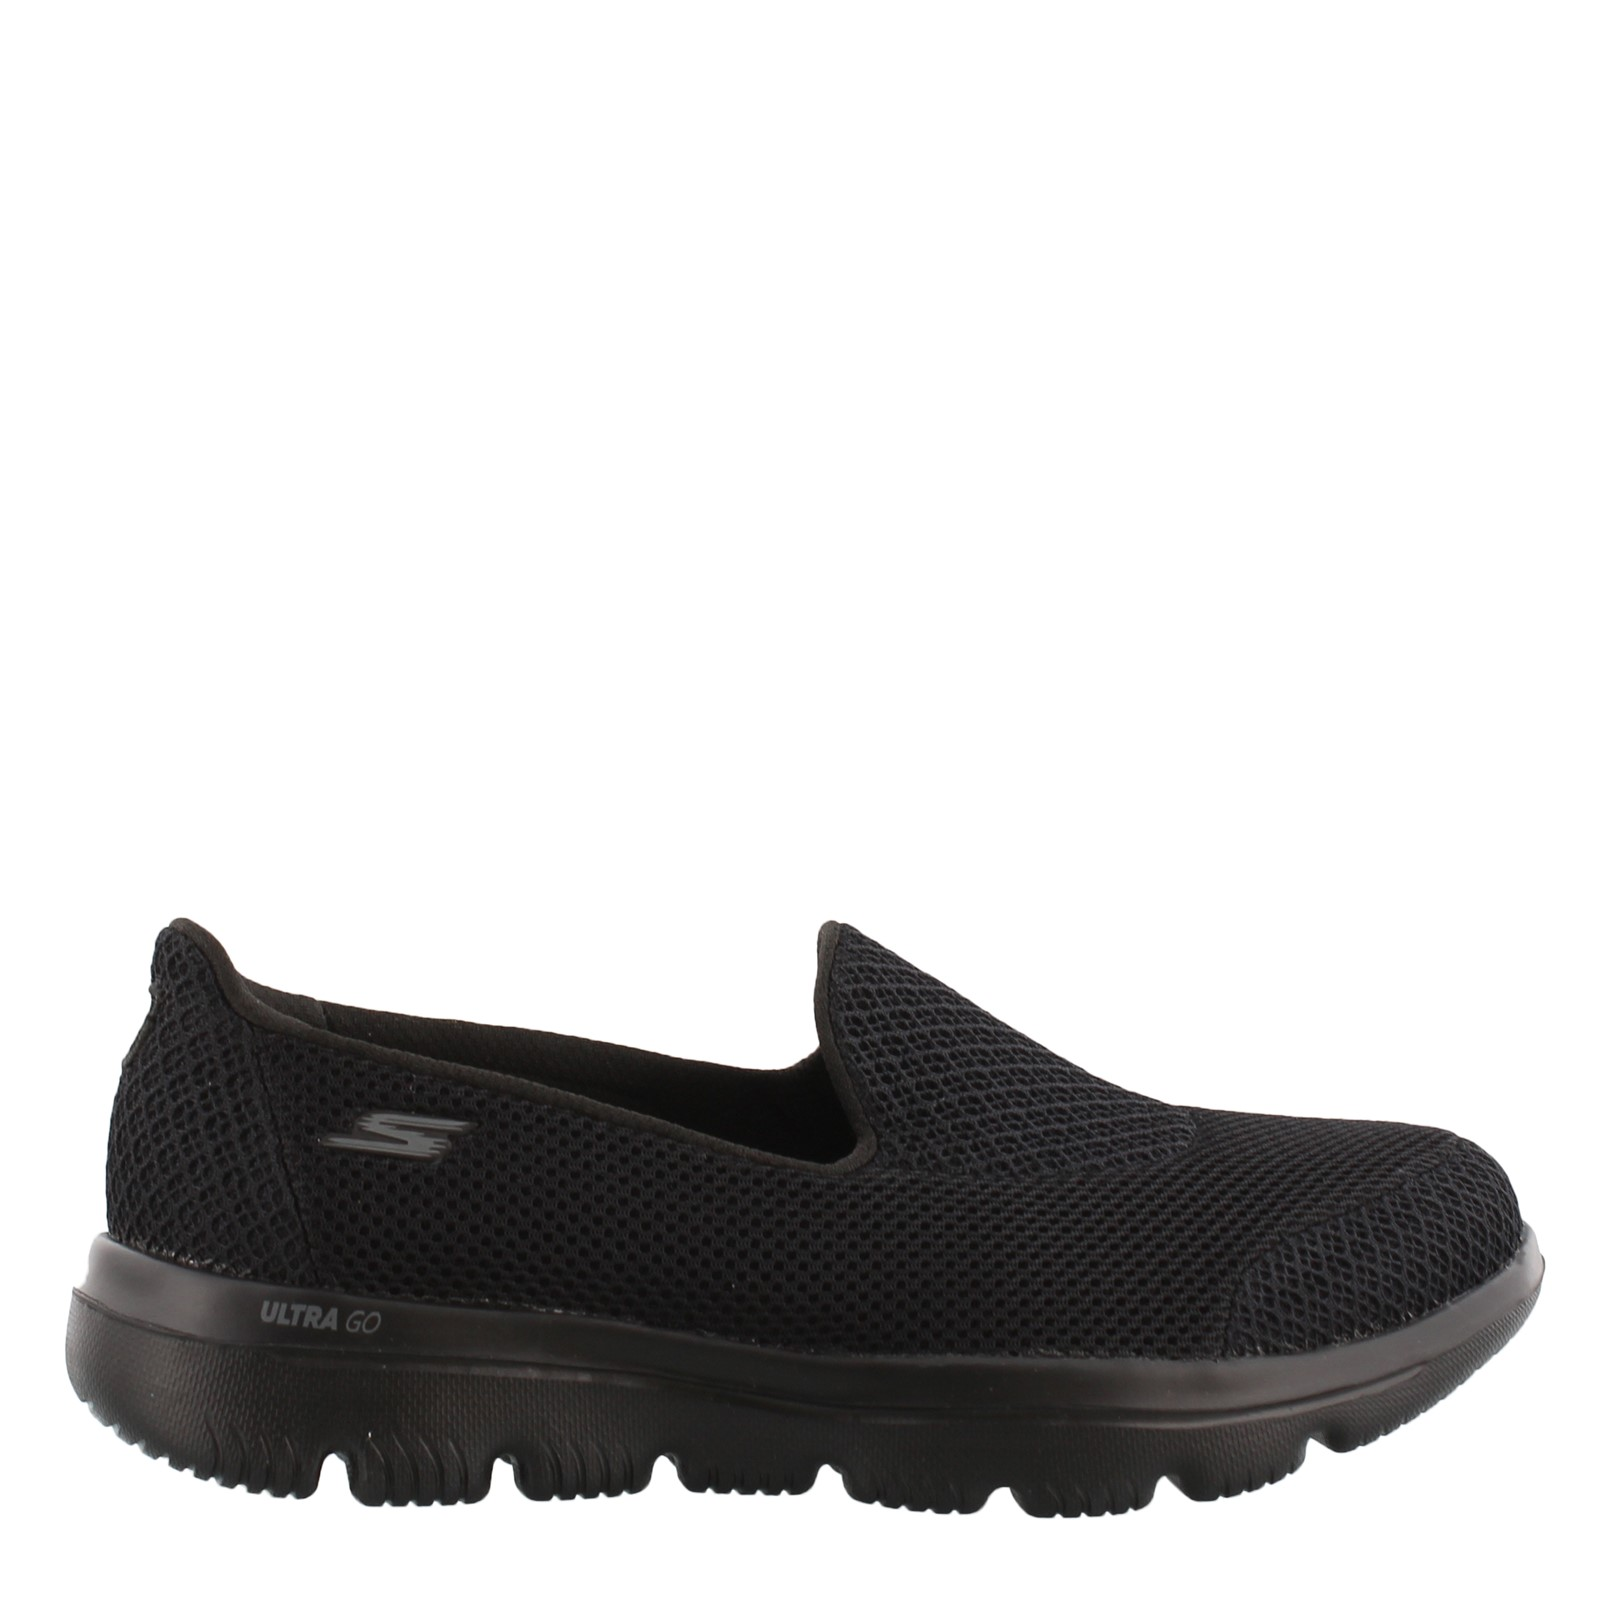 Women's Skechers, GOwalk Evolution Ultra - Interact